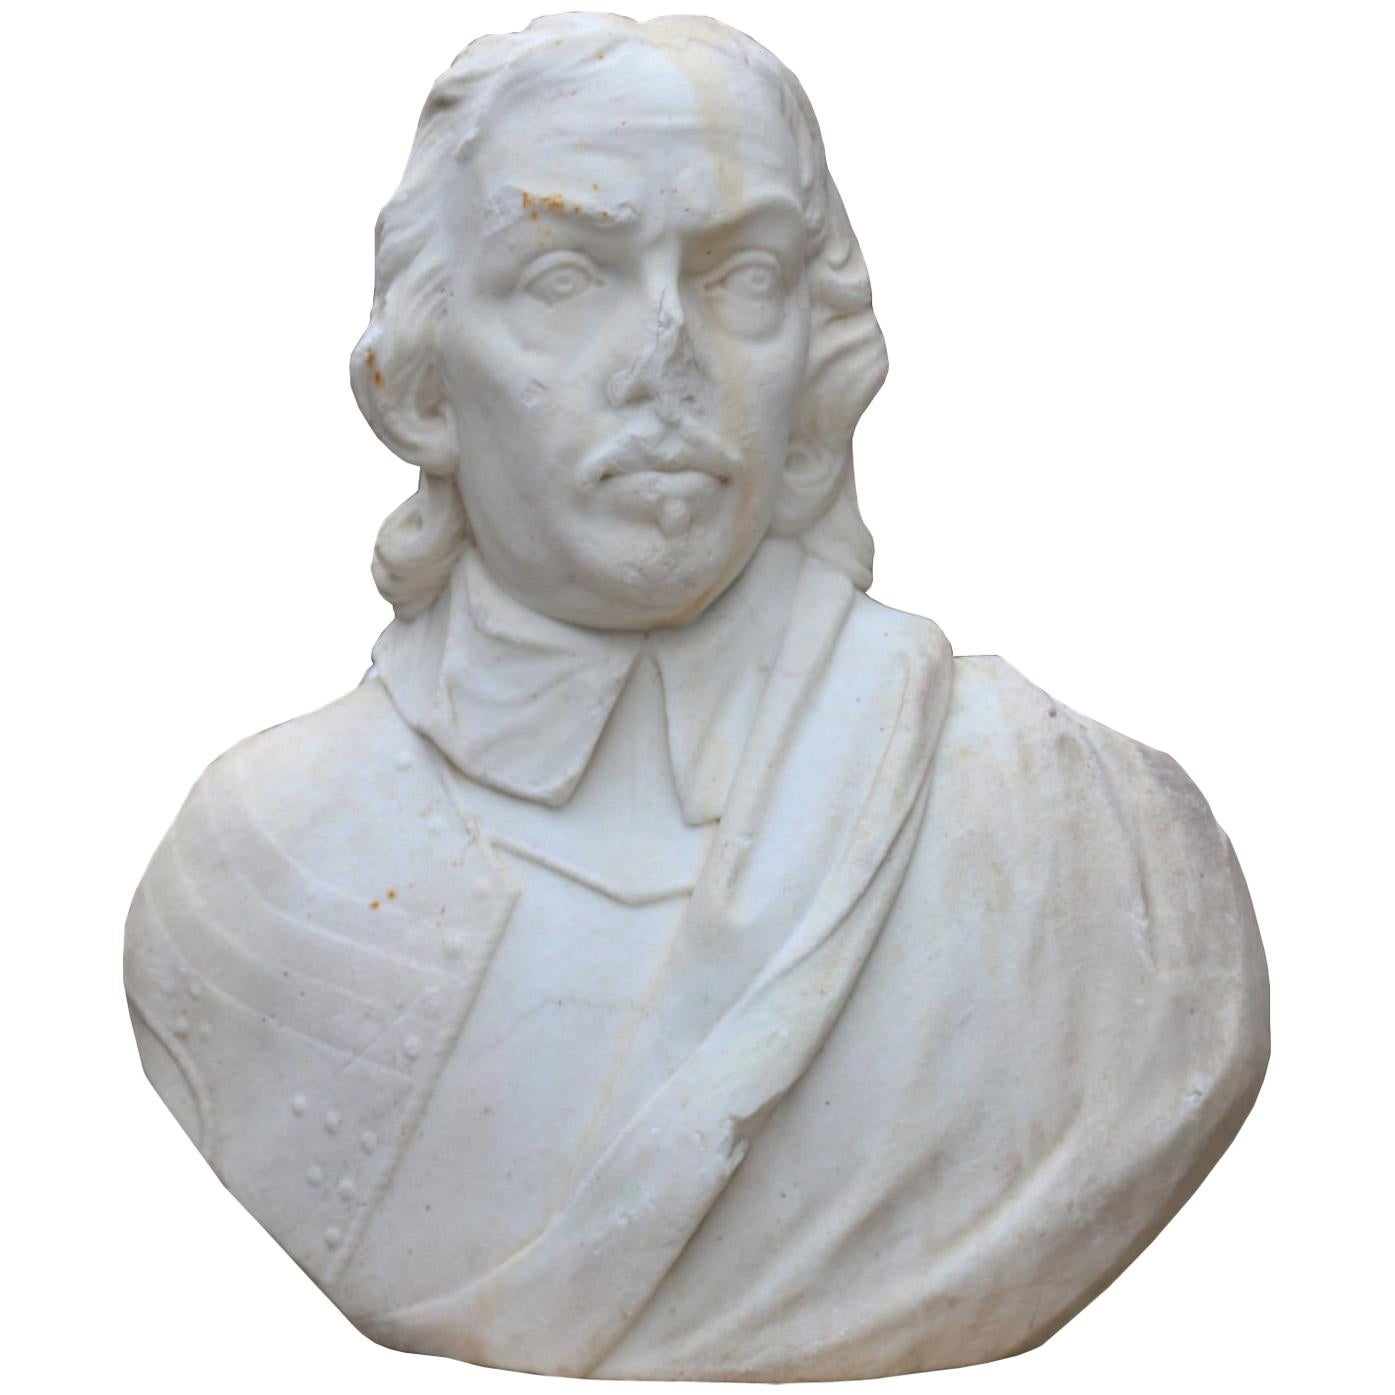 19th Century English Statuary Marble Bust of Oliver Cromwell